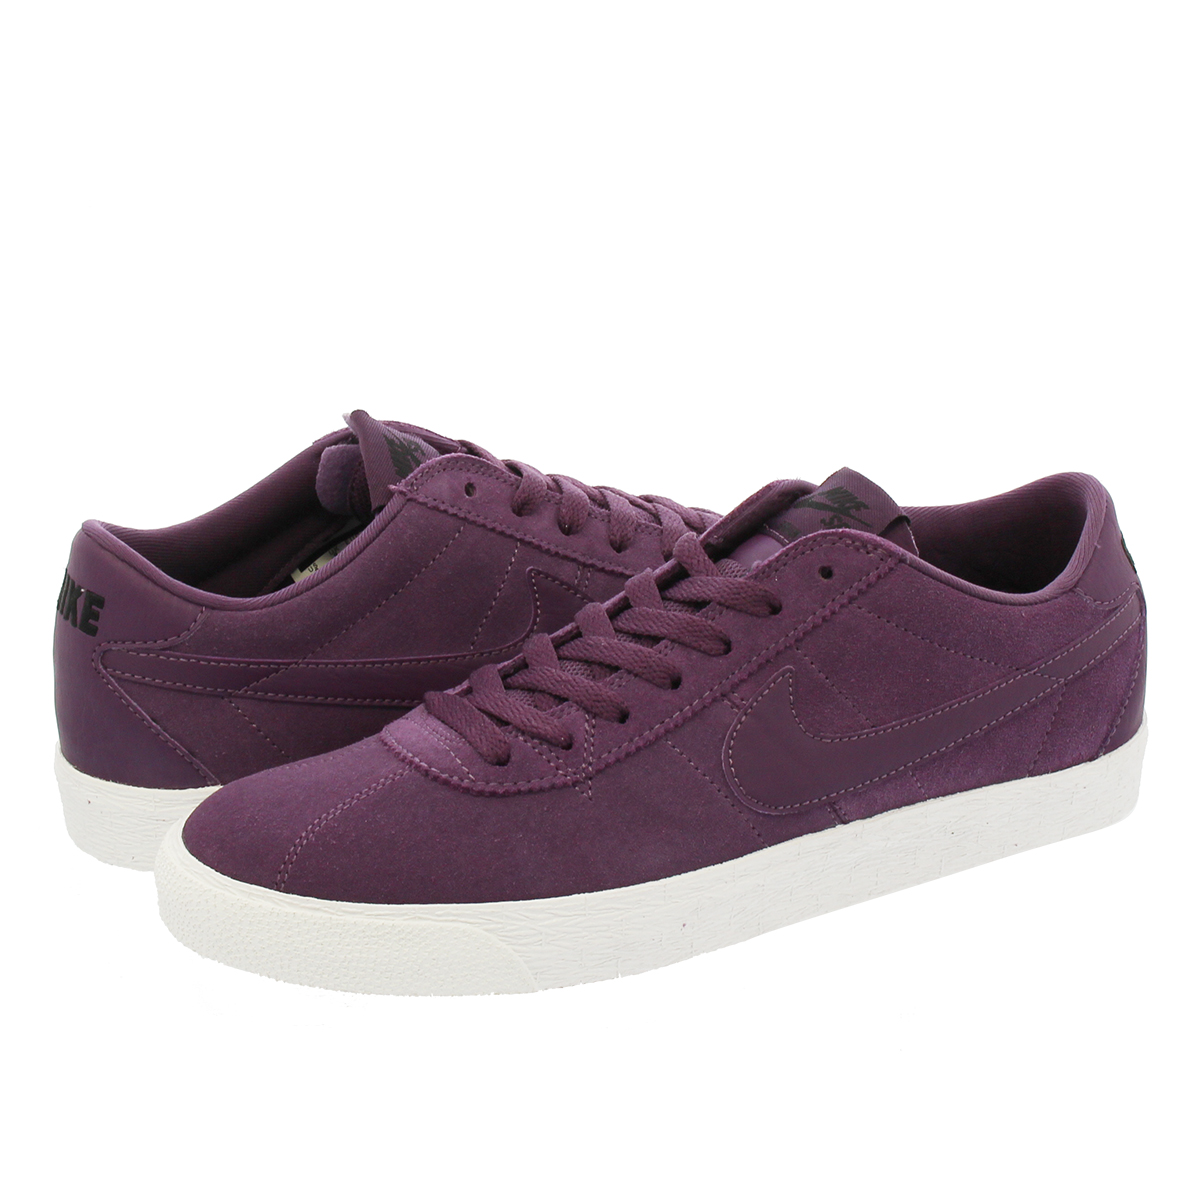 big sale 60d4e fba6f NIKE SB ZOOM BRUIN PRM SE Nike SB zoom bulldog in premium SE PURPLE WHITE